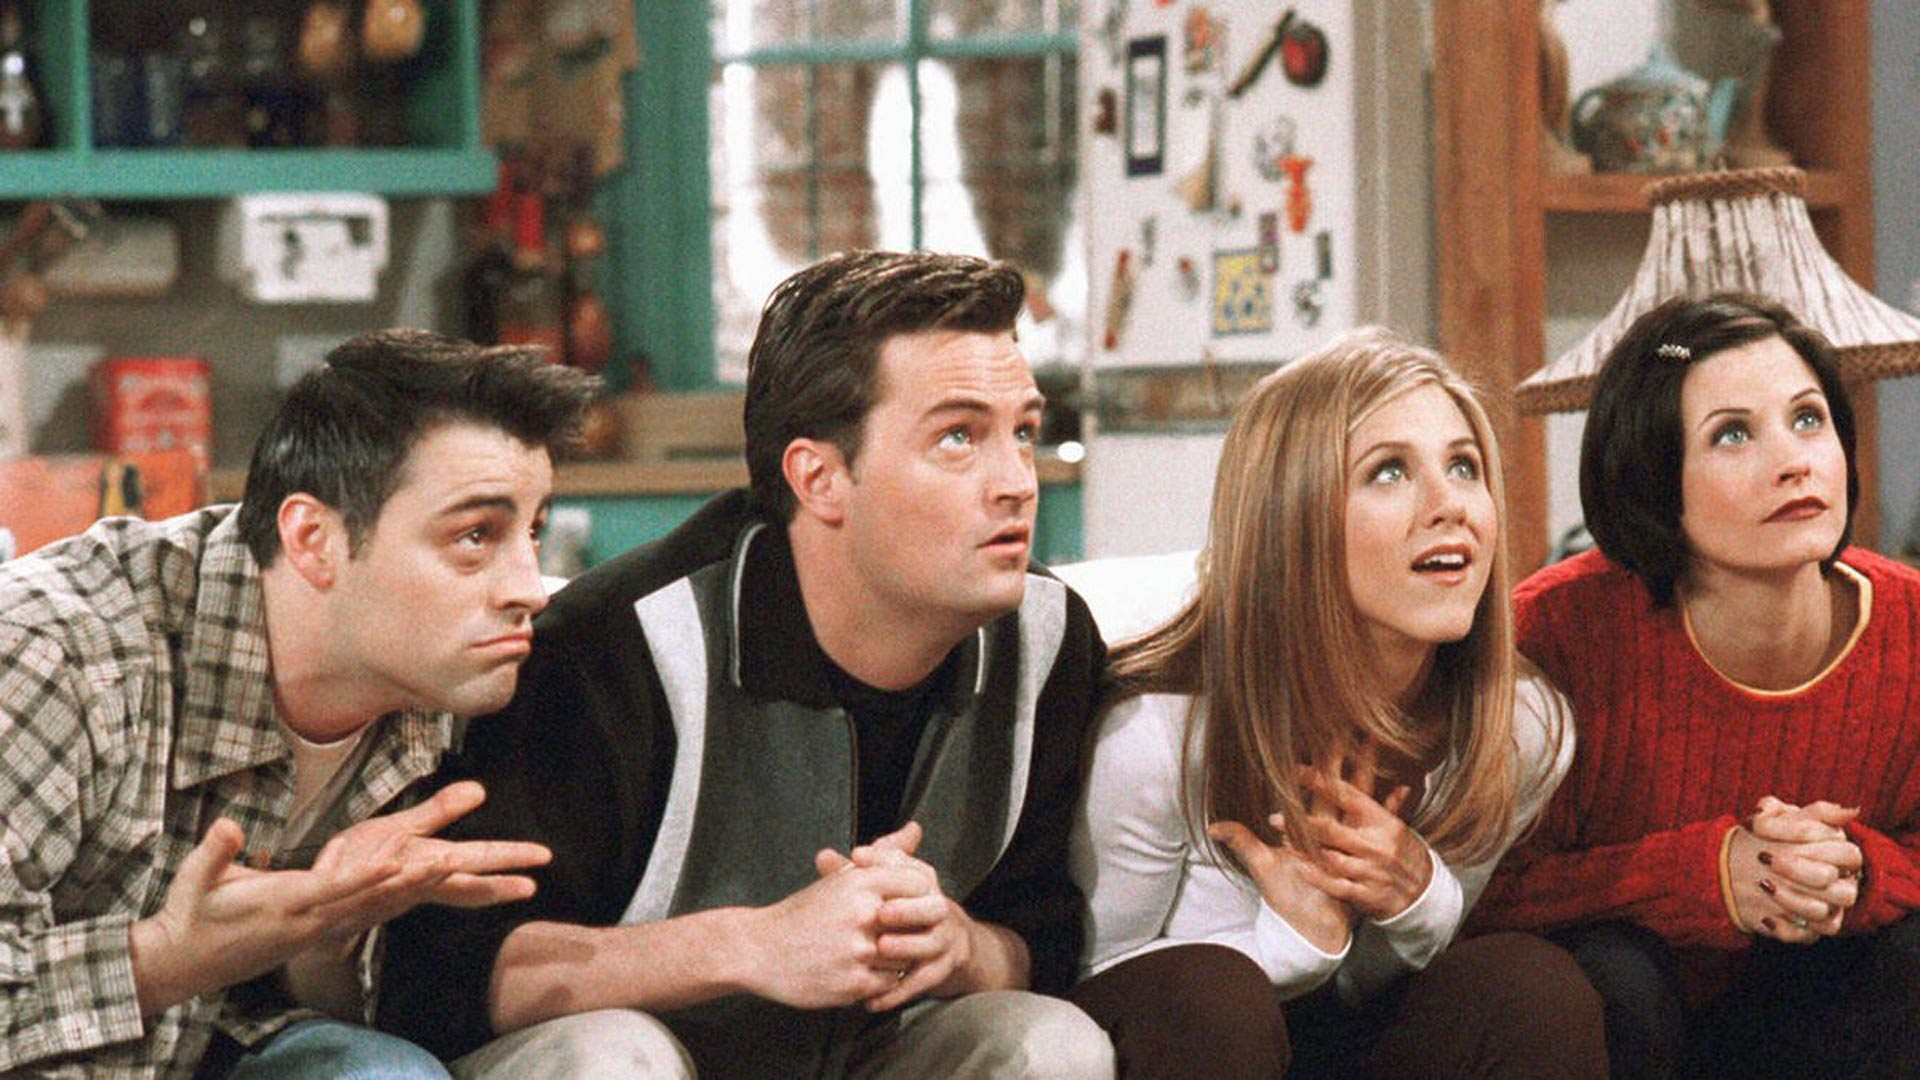 WarnerMedia lanzará en 2020 HBO Max y le quita 'Friends' a Netflix